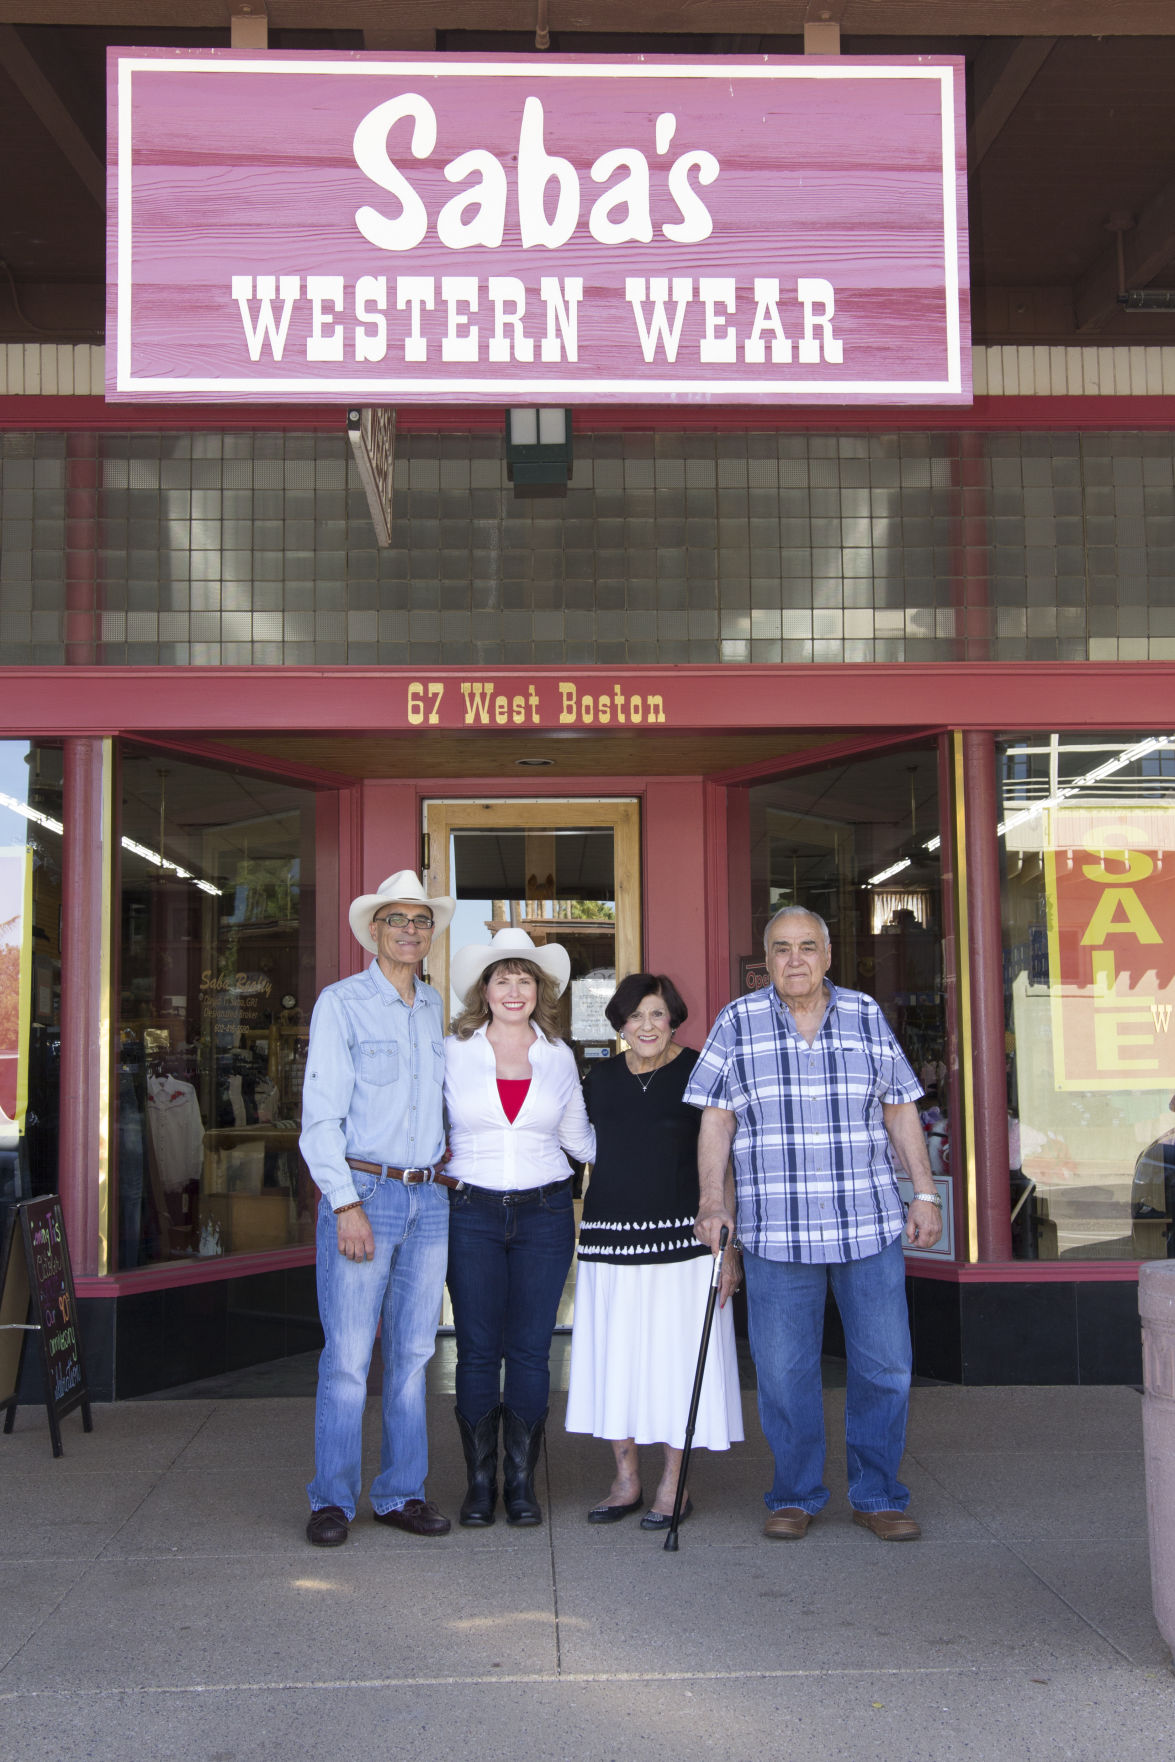 (From left): Davey Saba, his wife Lori Saba, Joan Saba and her husband David Saba Jr. stand in front of the Saba's Western Wear store in downtown Chandler. Joan and David Jr. are the parents of Davey. Saba's is marking its 90th anniversary of the Chandler store.